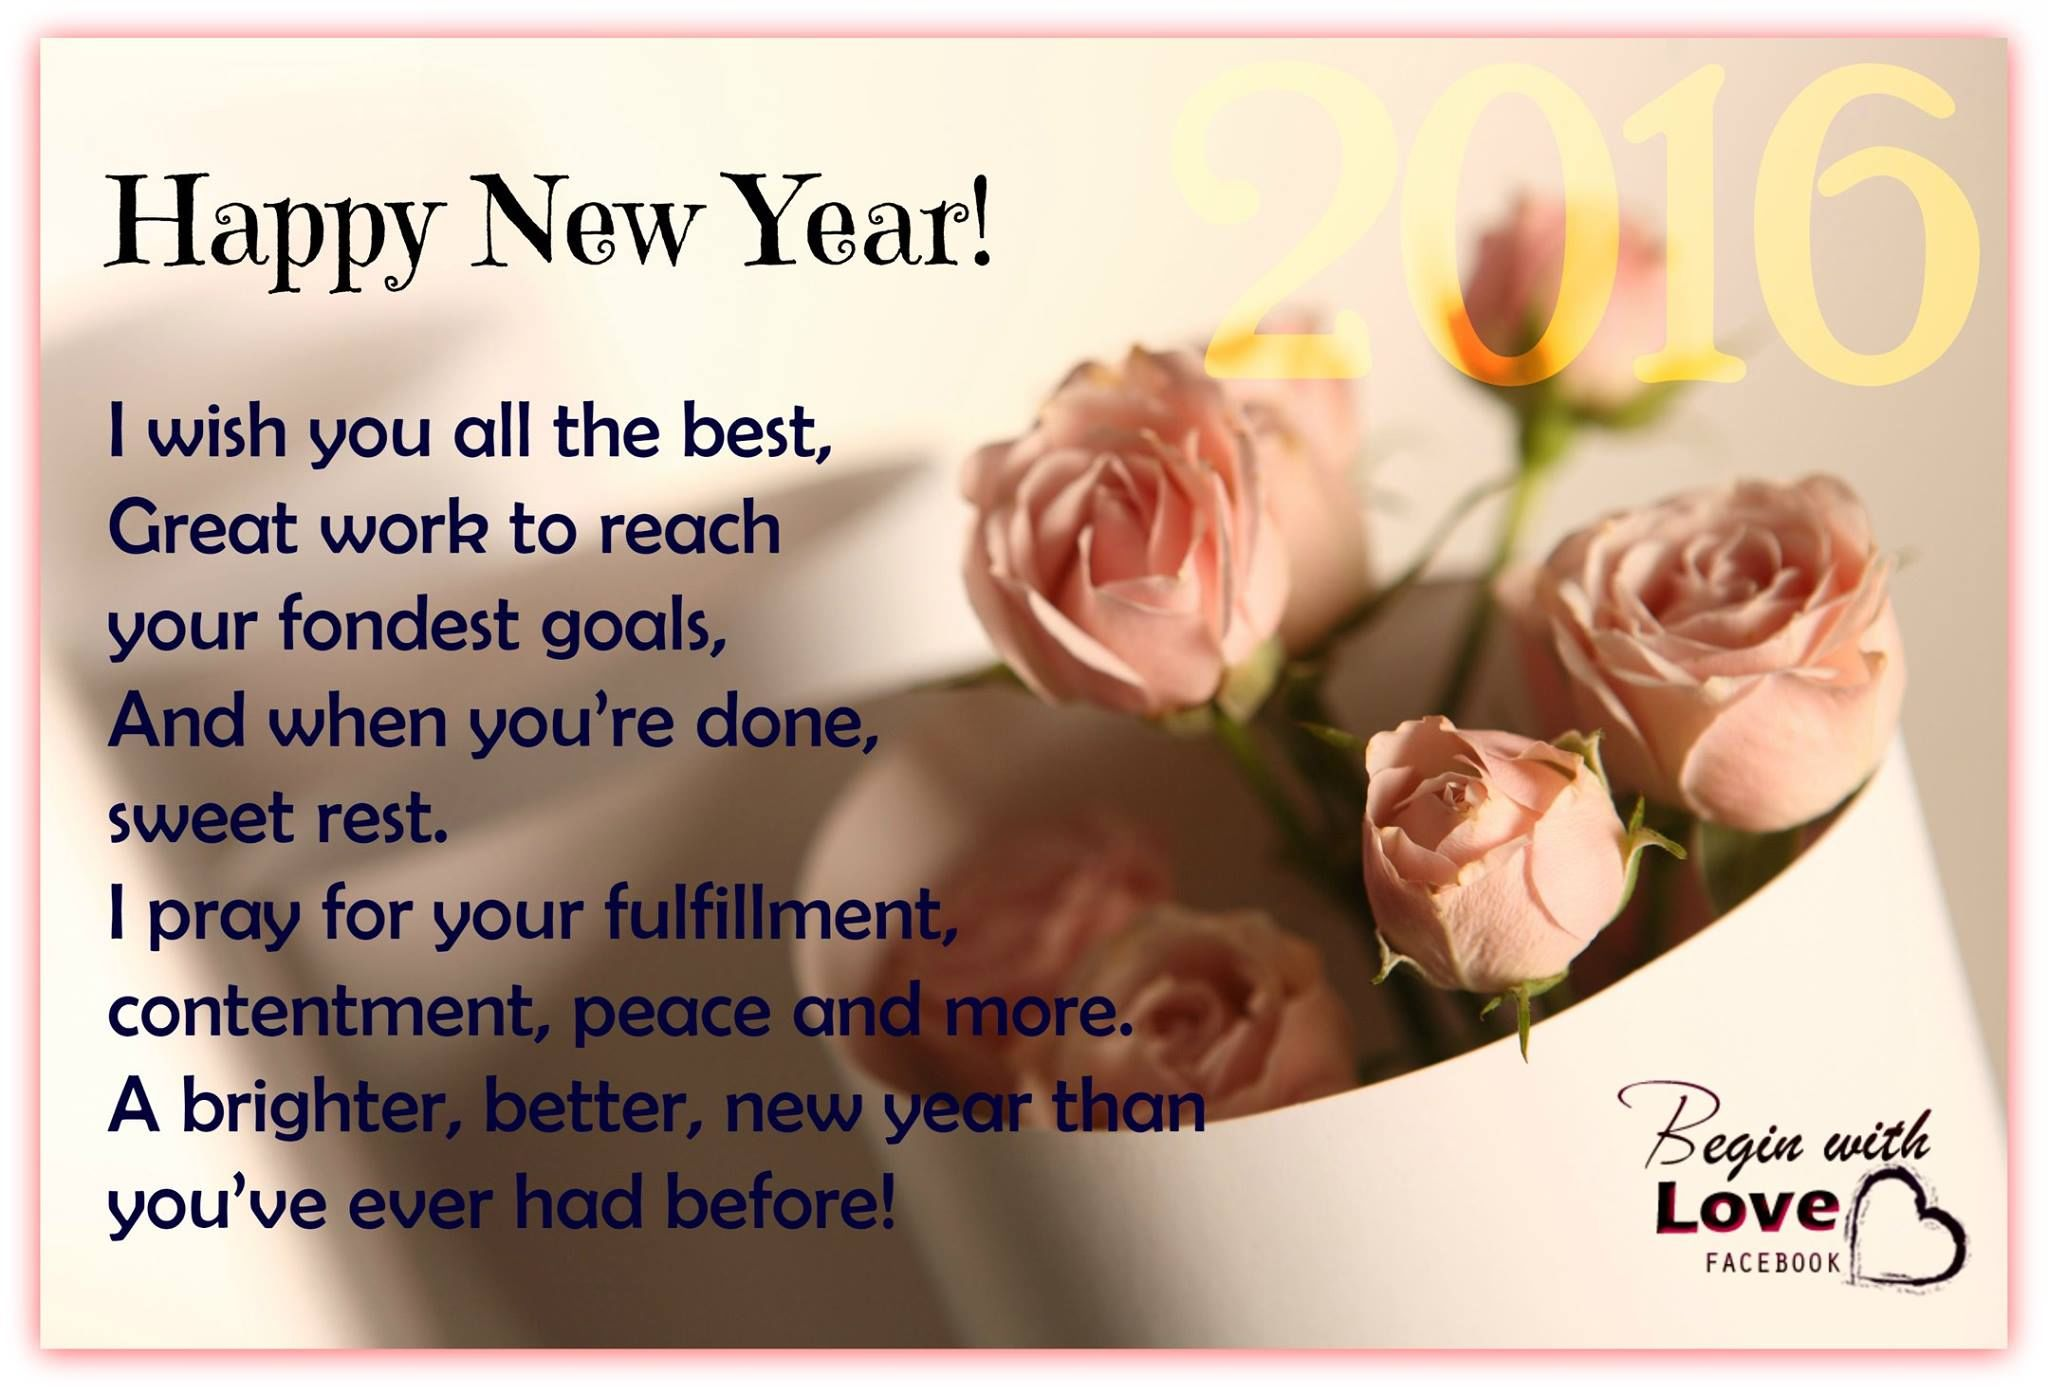 Happy New Year 2016 Poem Pictures, Photos, and Images for ...